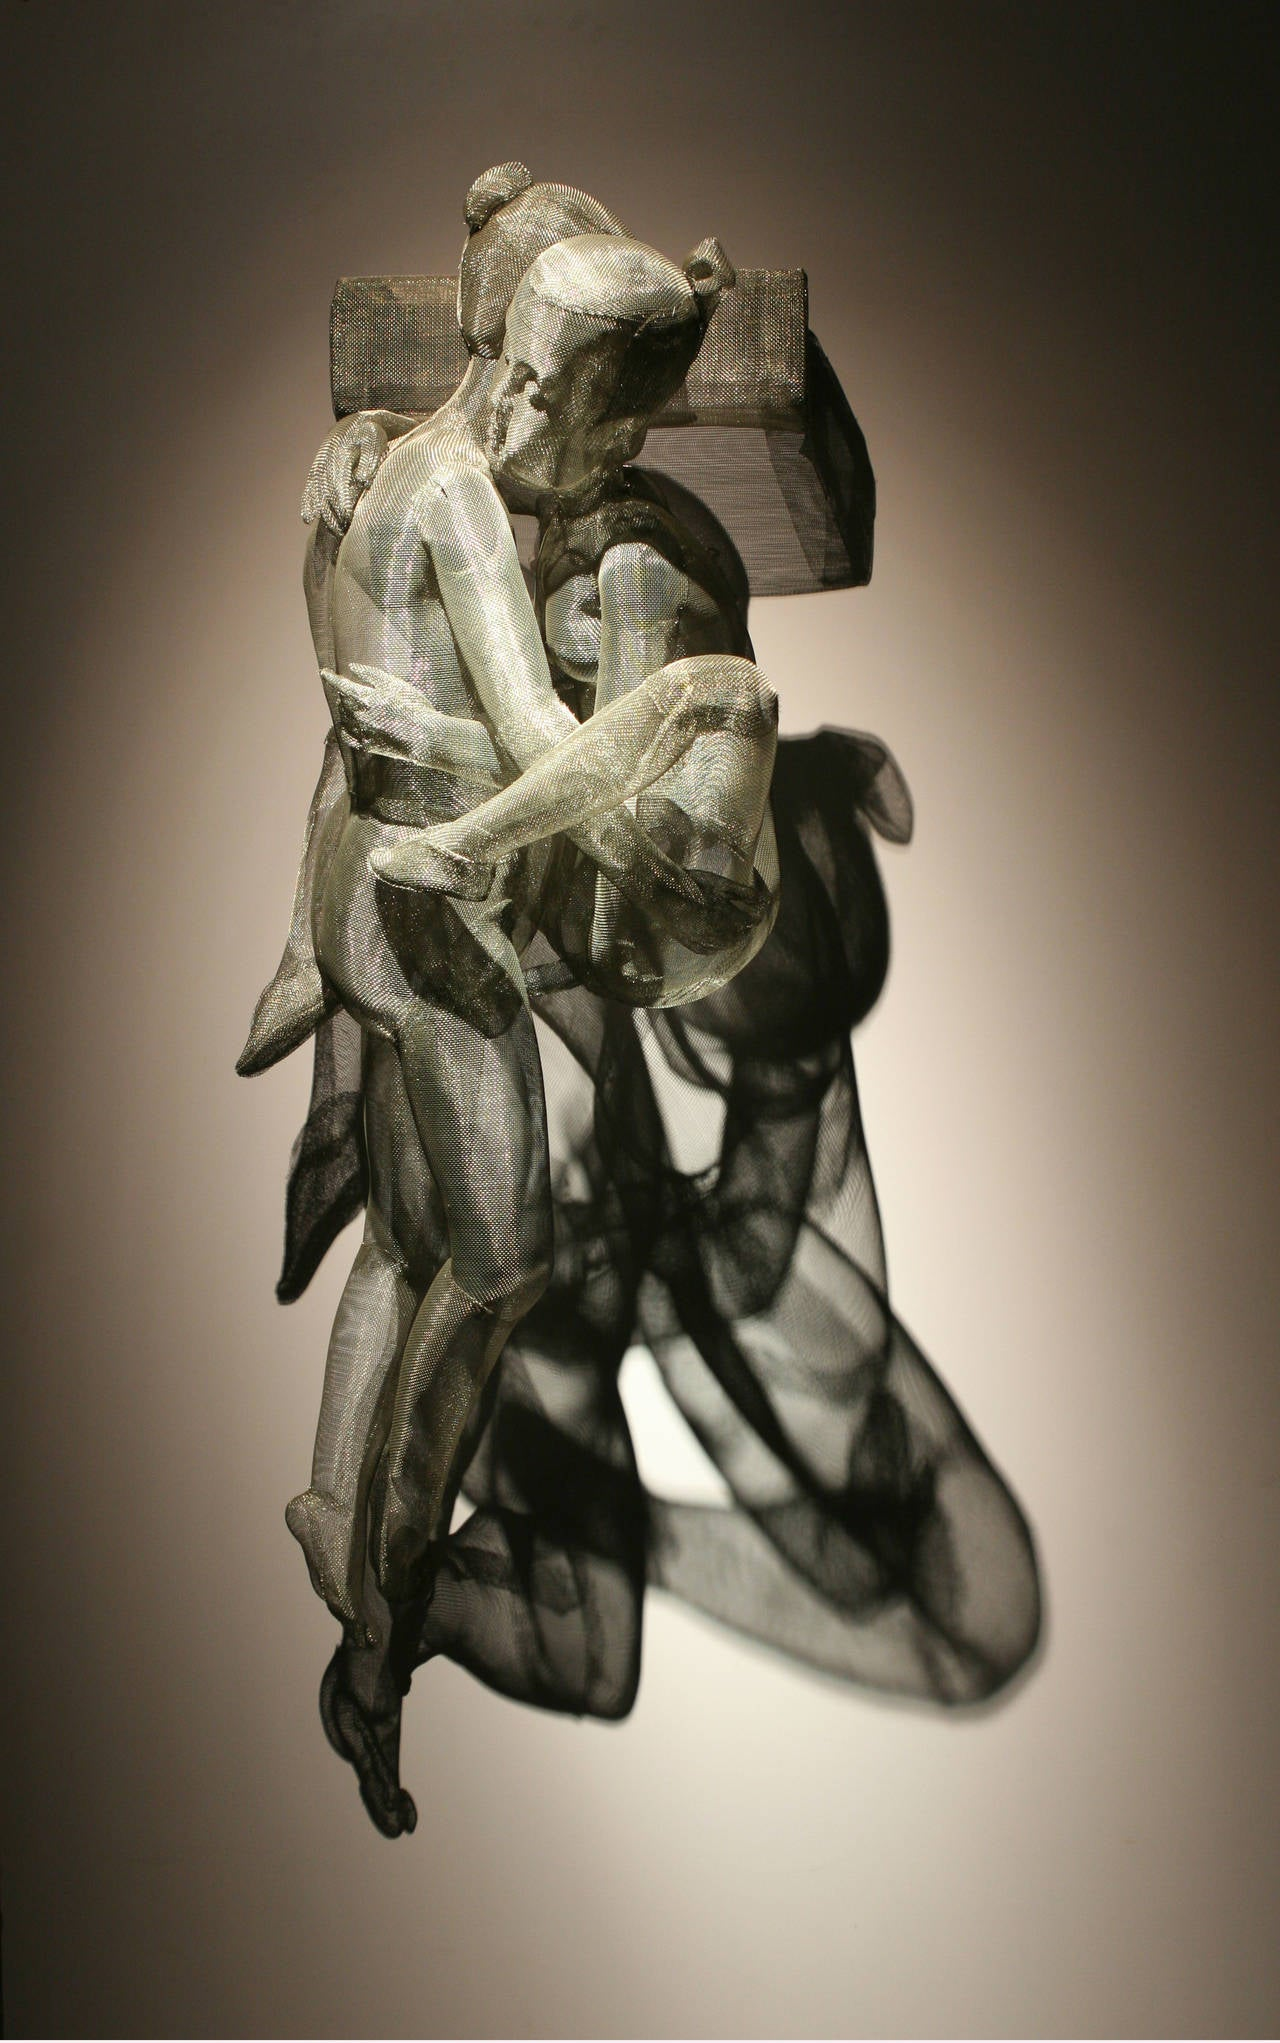 Sculpture - Intimacy (stainless steel mesh)